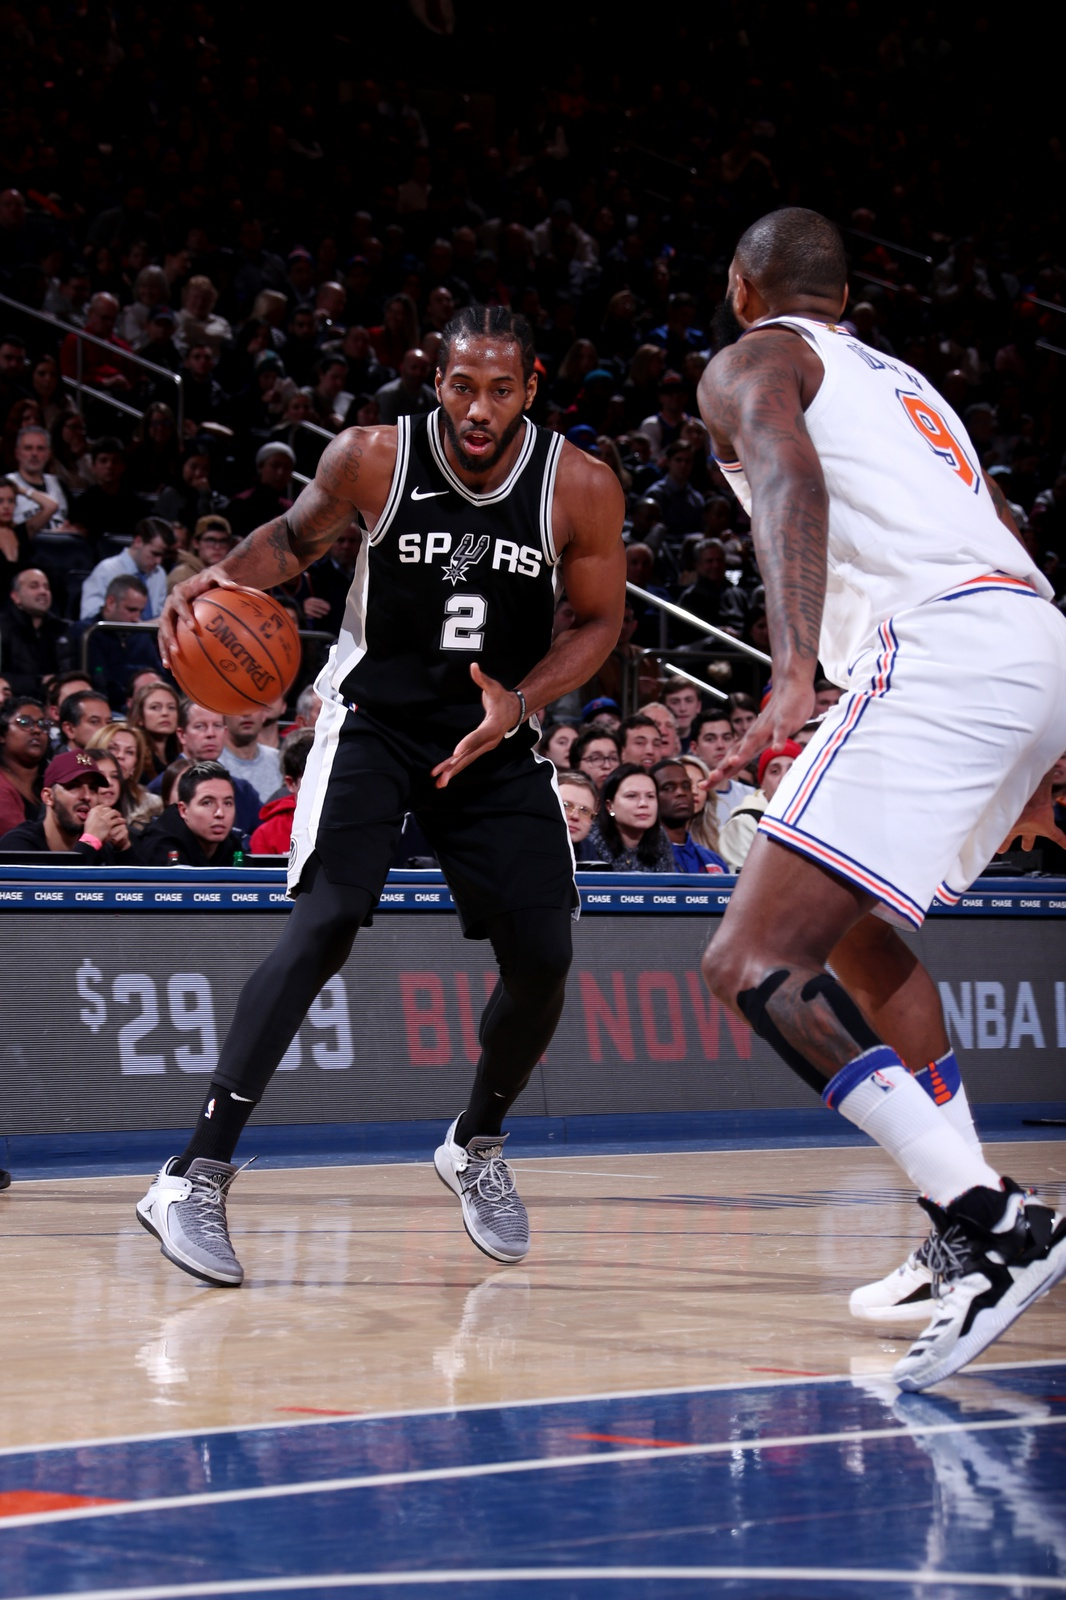 Kawhi Leonard #2 of the San Antonio Spurs handles the ball during the game against the New York Knicks on January 2, 2018 at Madison Square Garden in New York, New York.